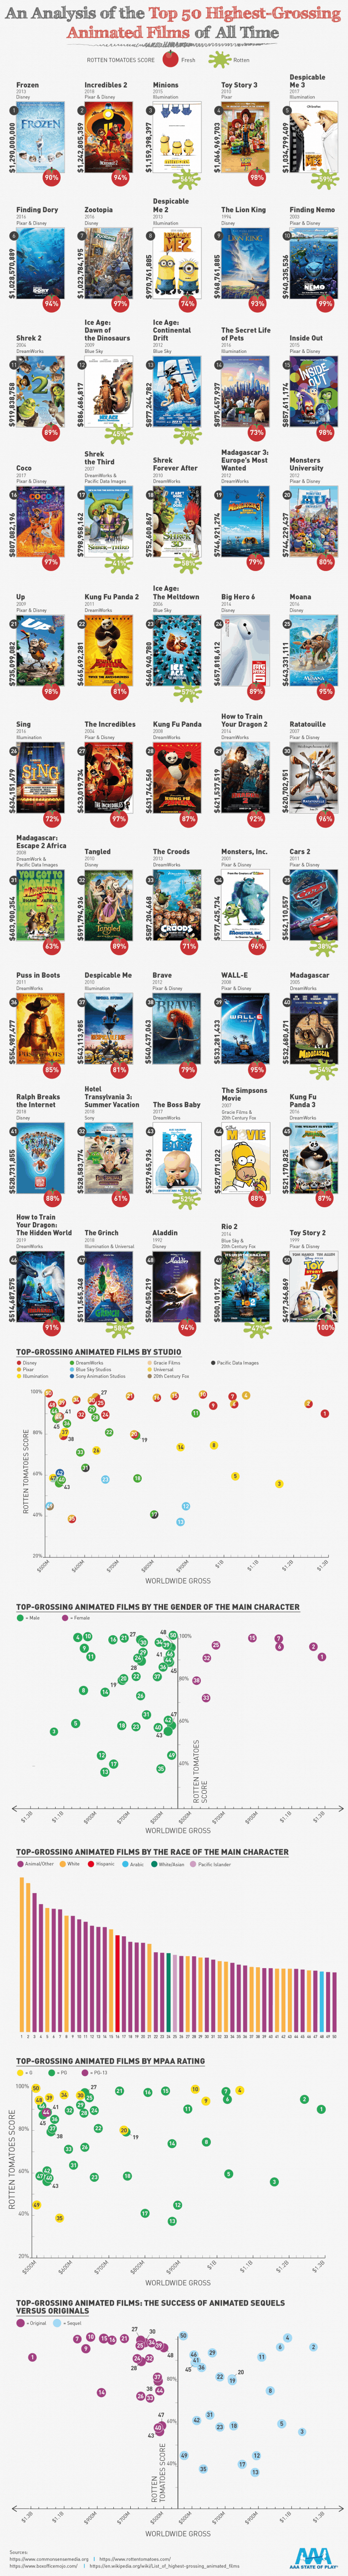 An Analysis of The Top 50 Highest-Grossing Animated Films Of All Time